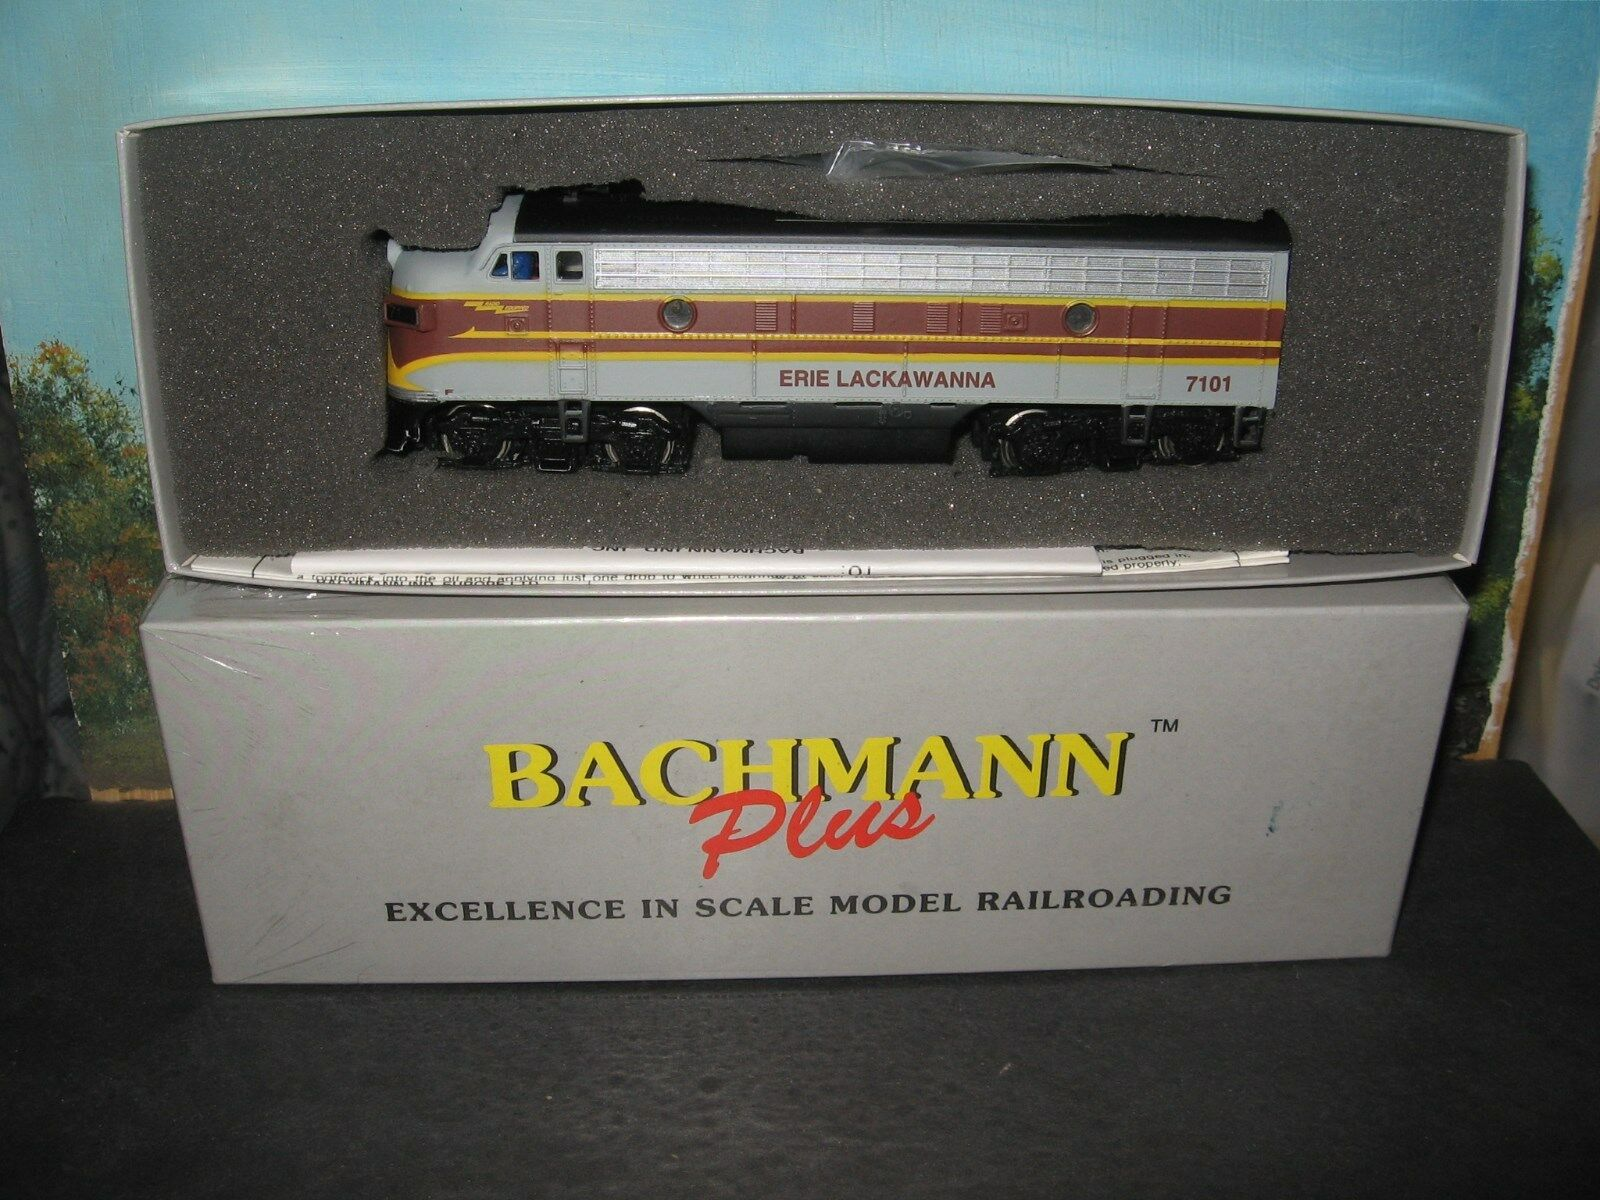 BACHuomoN PLUS  1123811239 F7AA ERIE LACKAWANNA  71017131 POWErosso